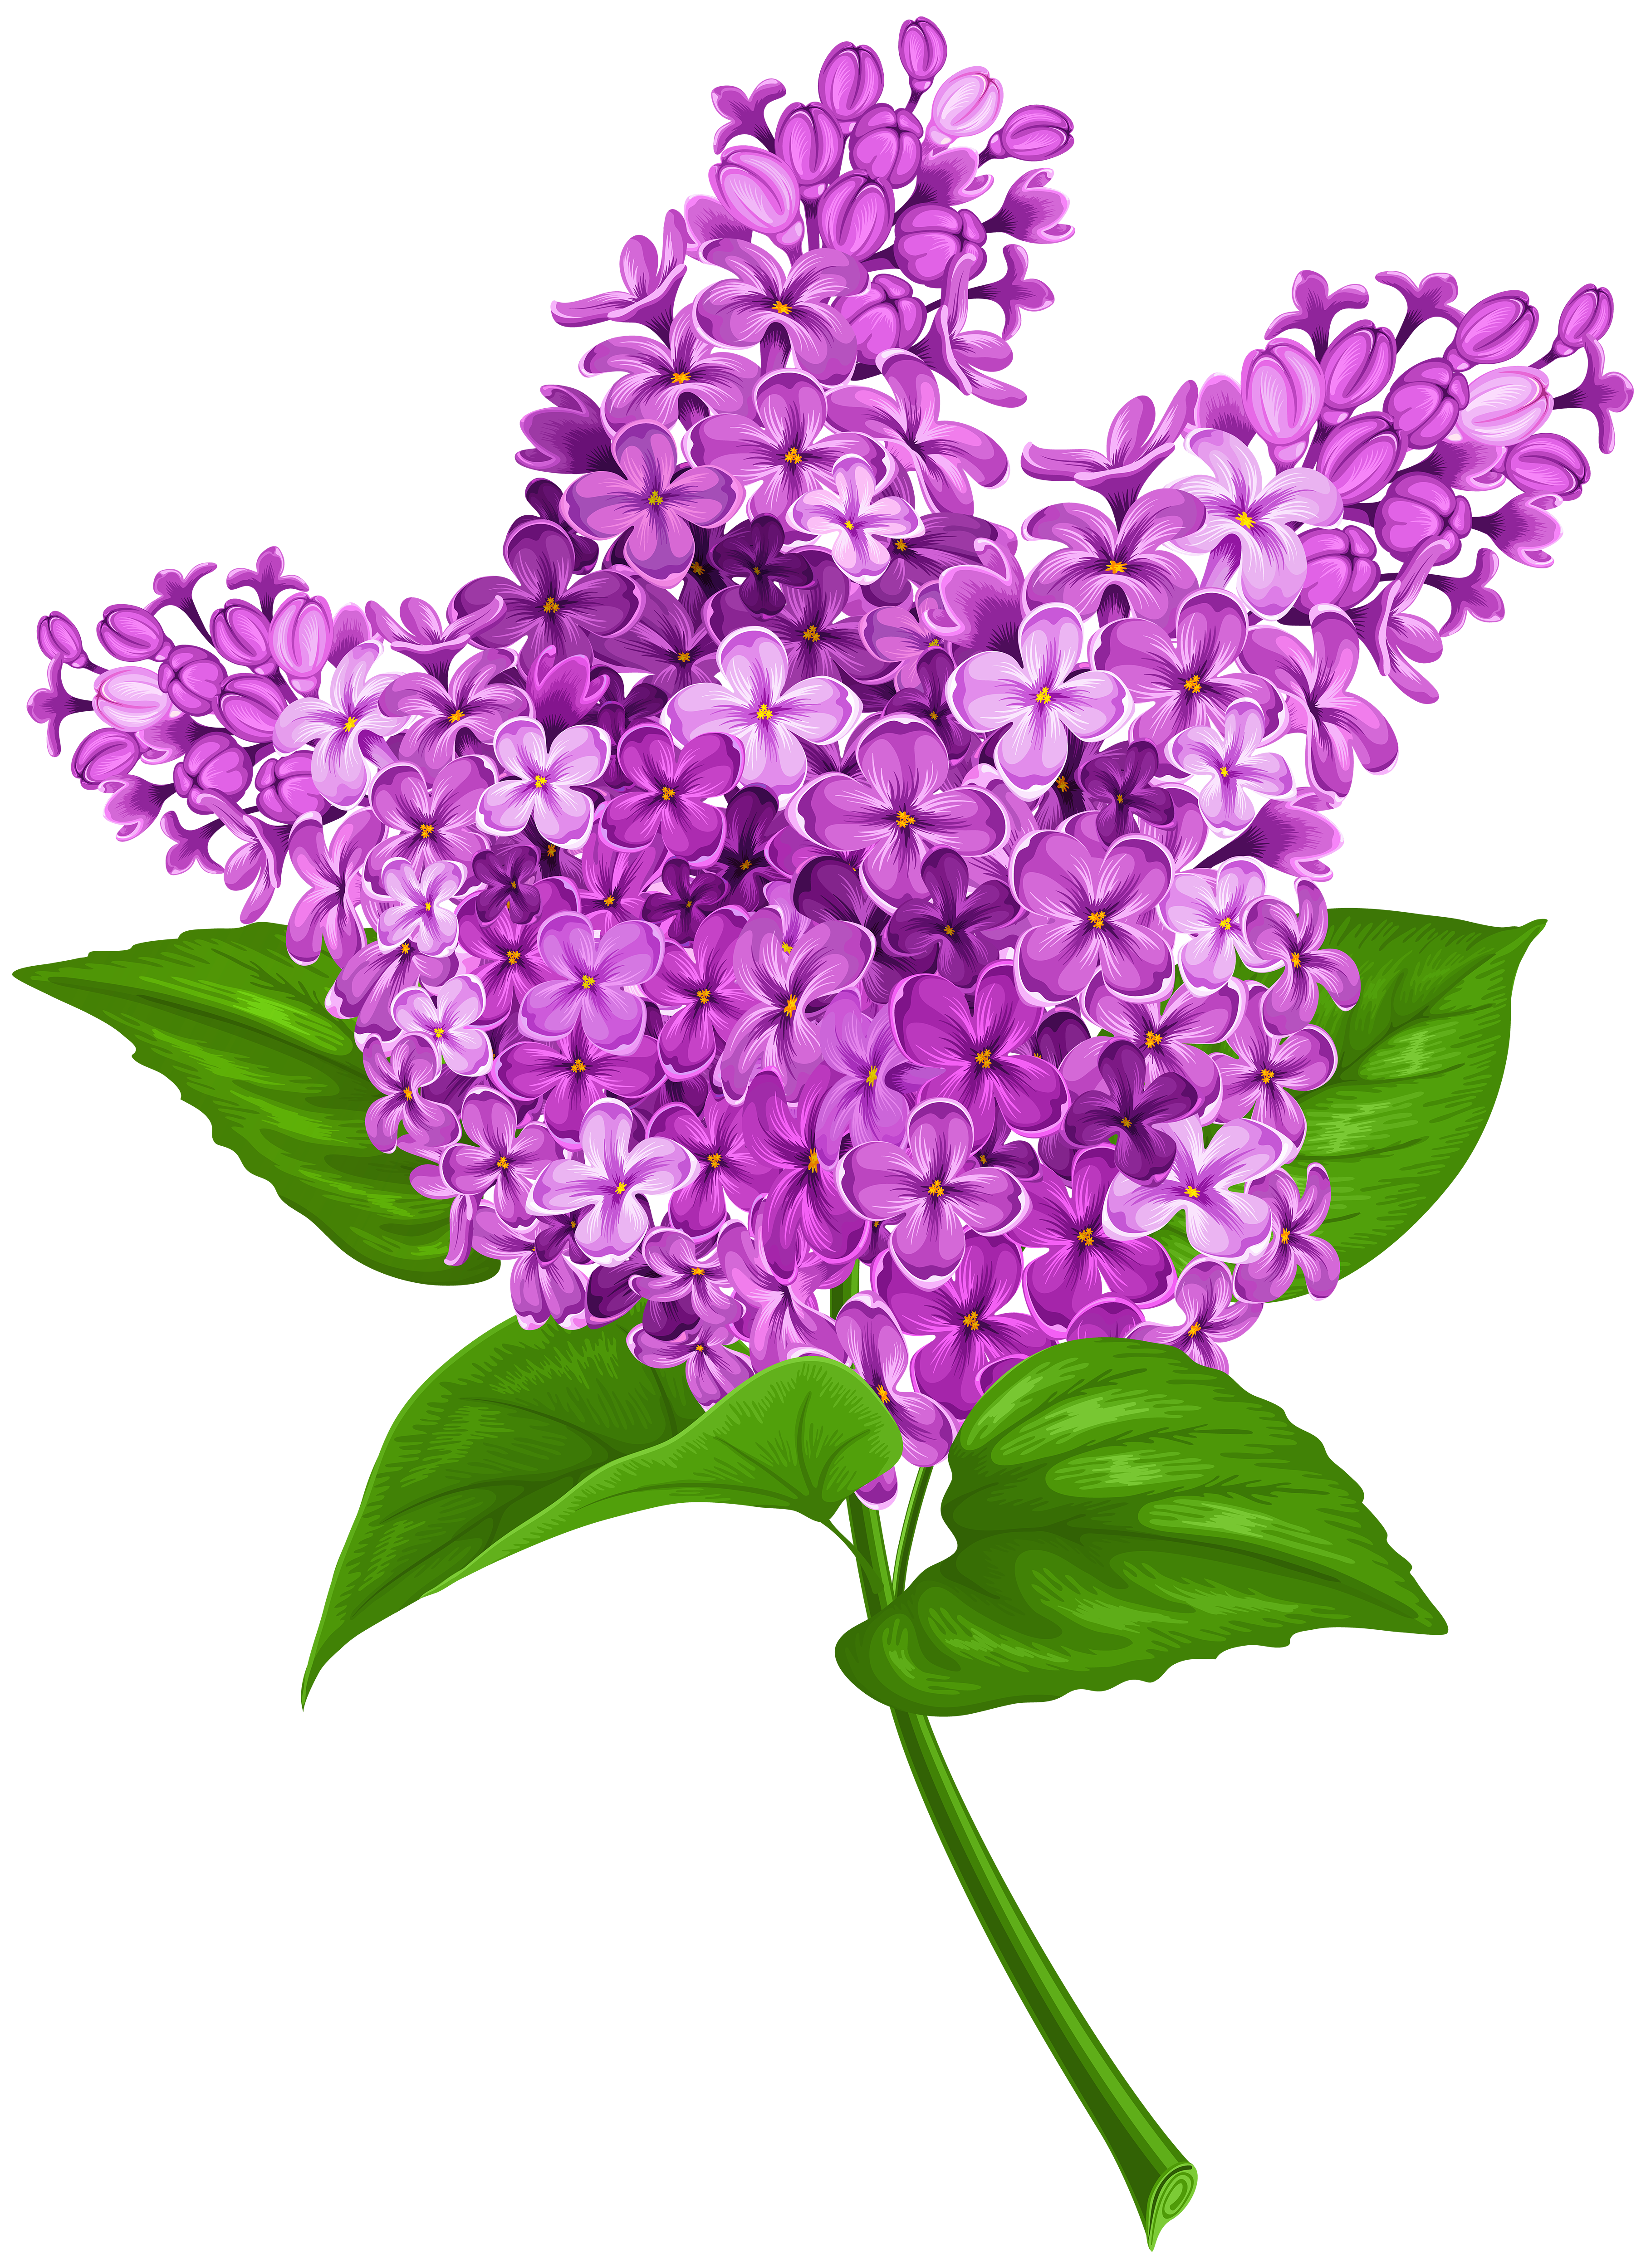 Lilac clipart #1, Download drawings